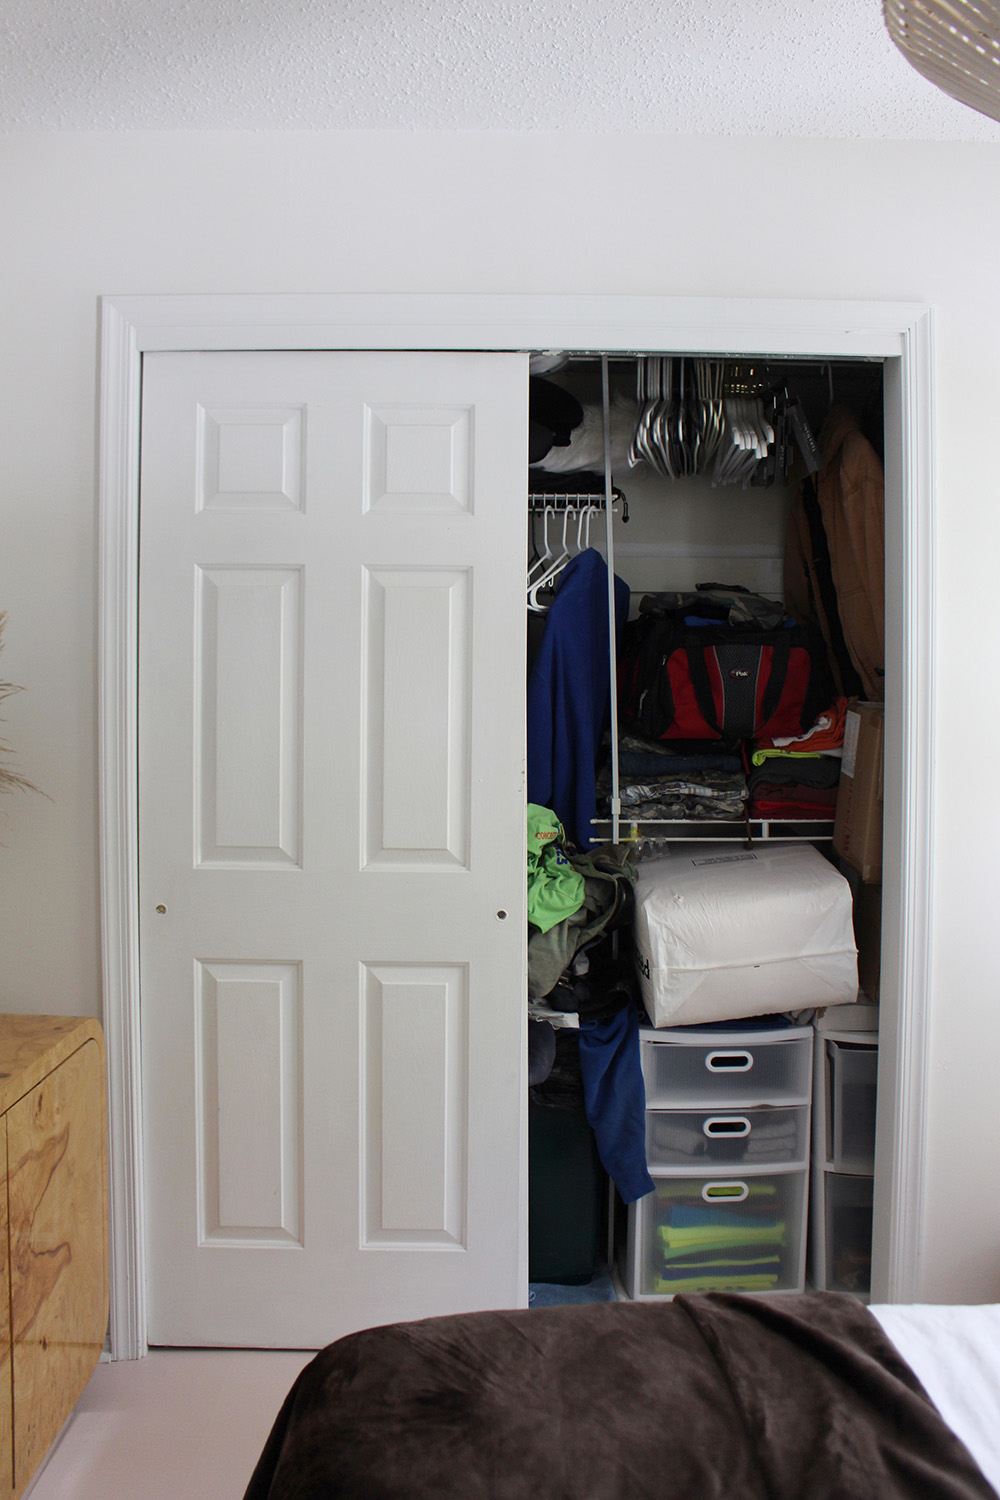 A closet with one door slid open filled to the top.